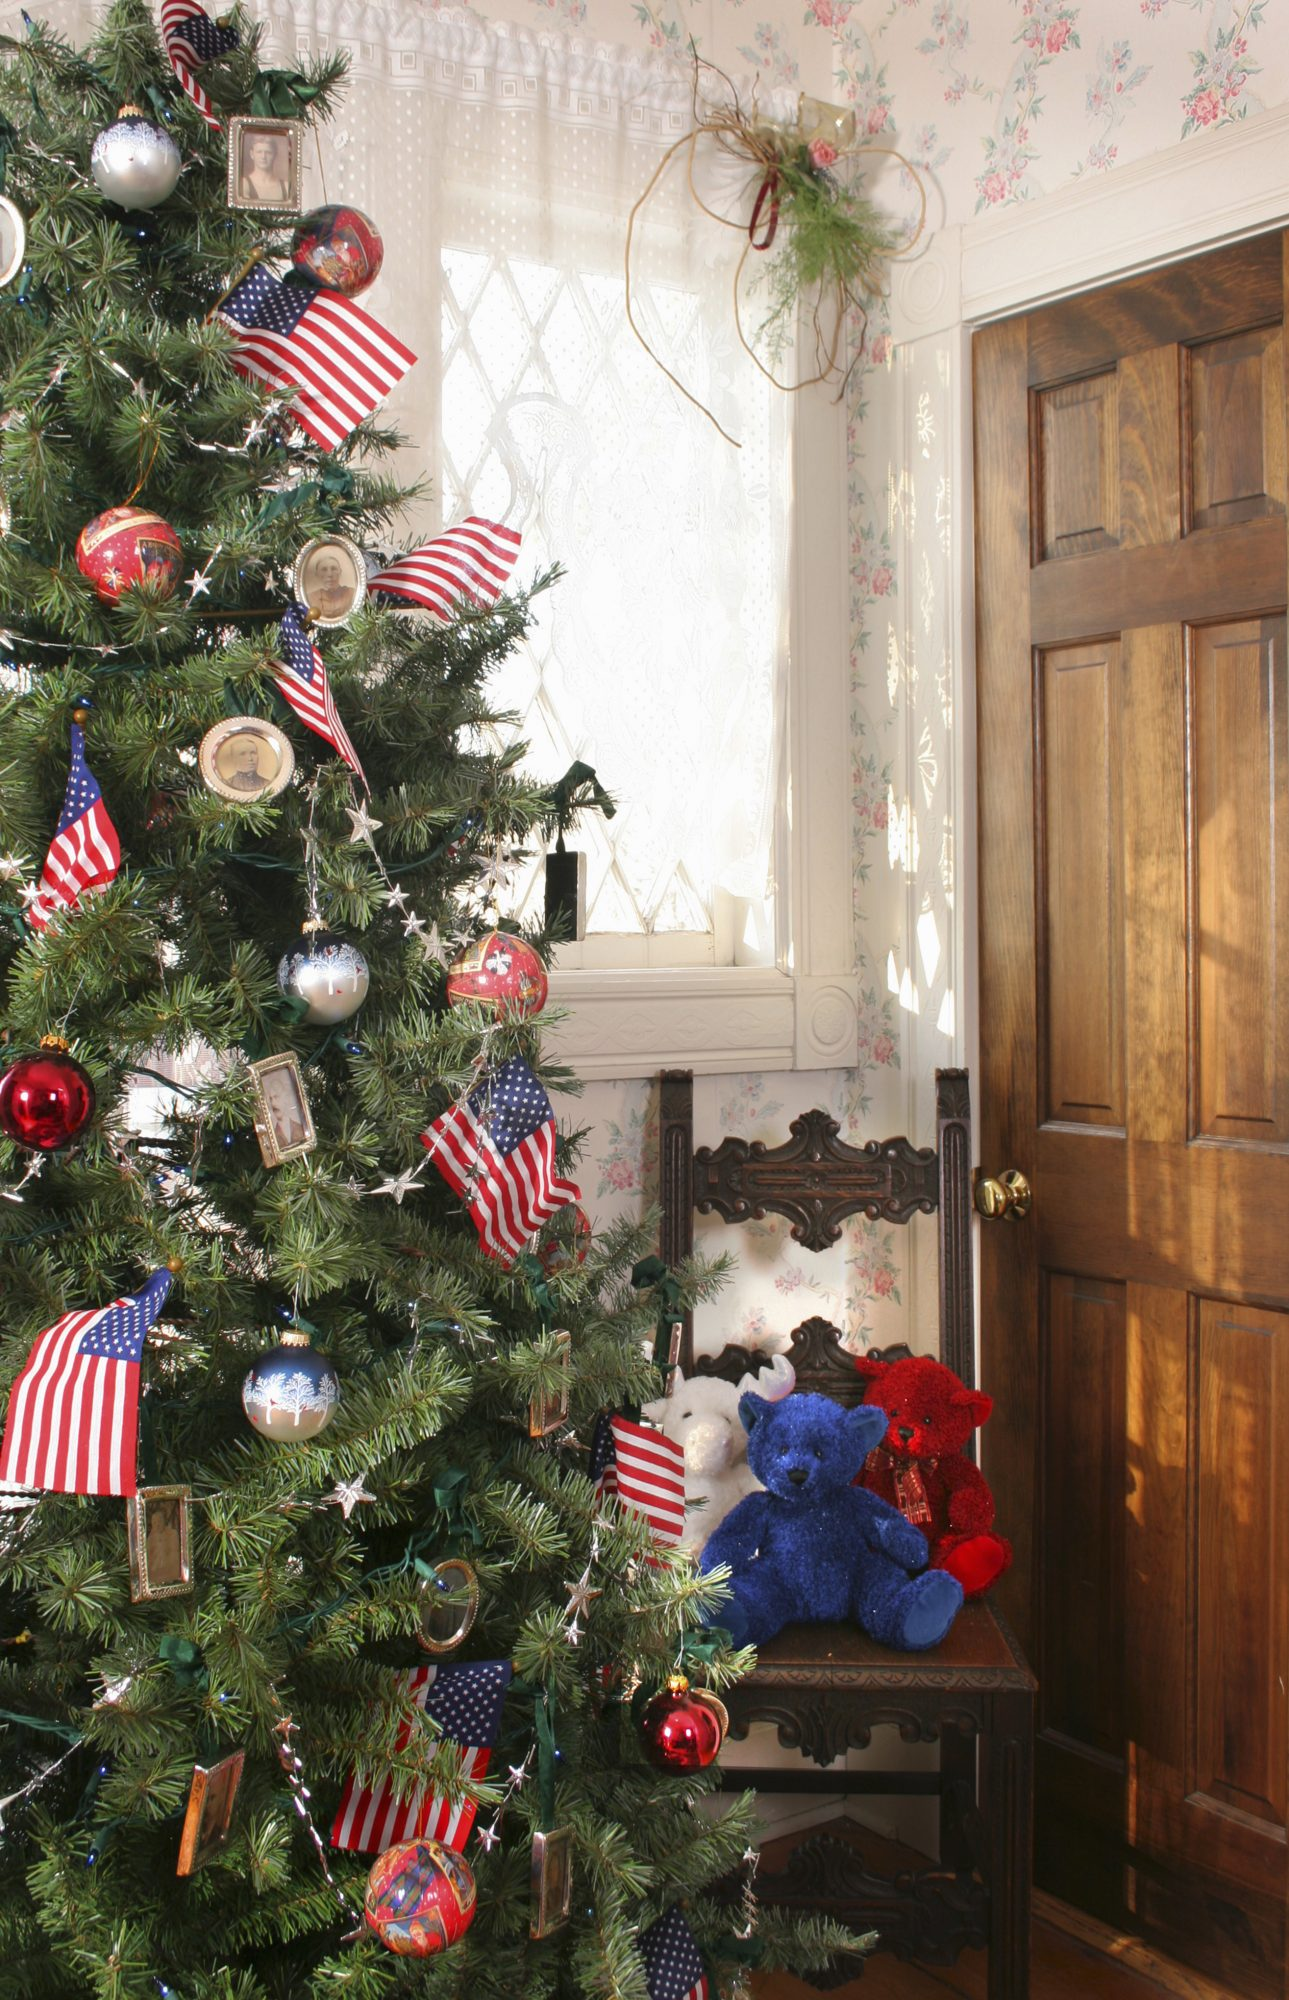 Christmas tree decorated with American stars and stripes theme.